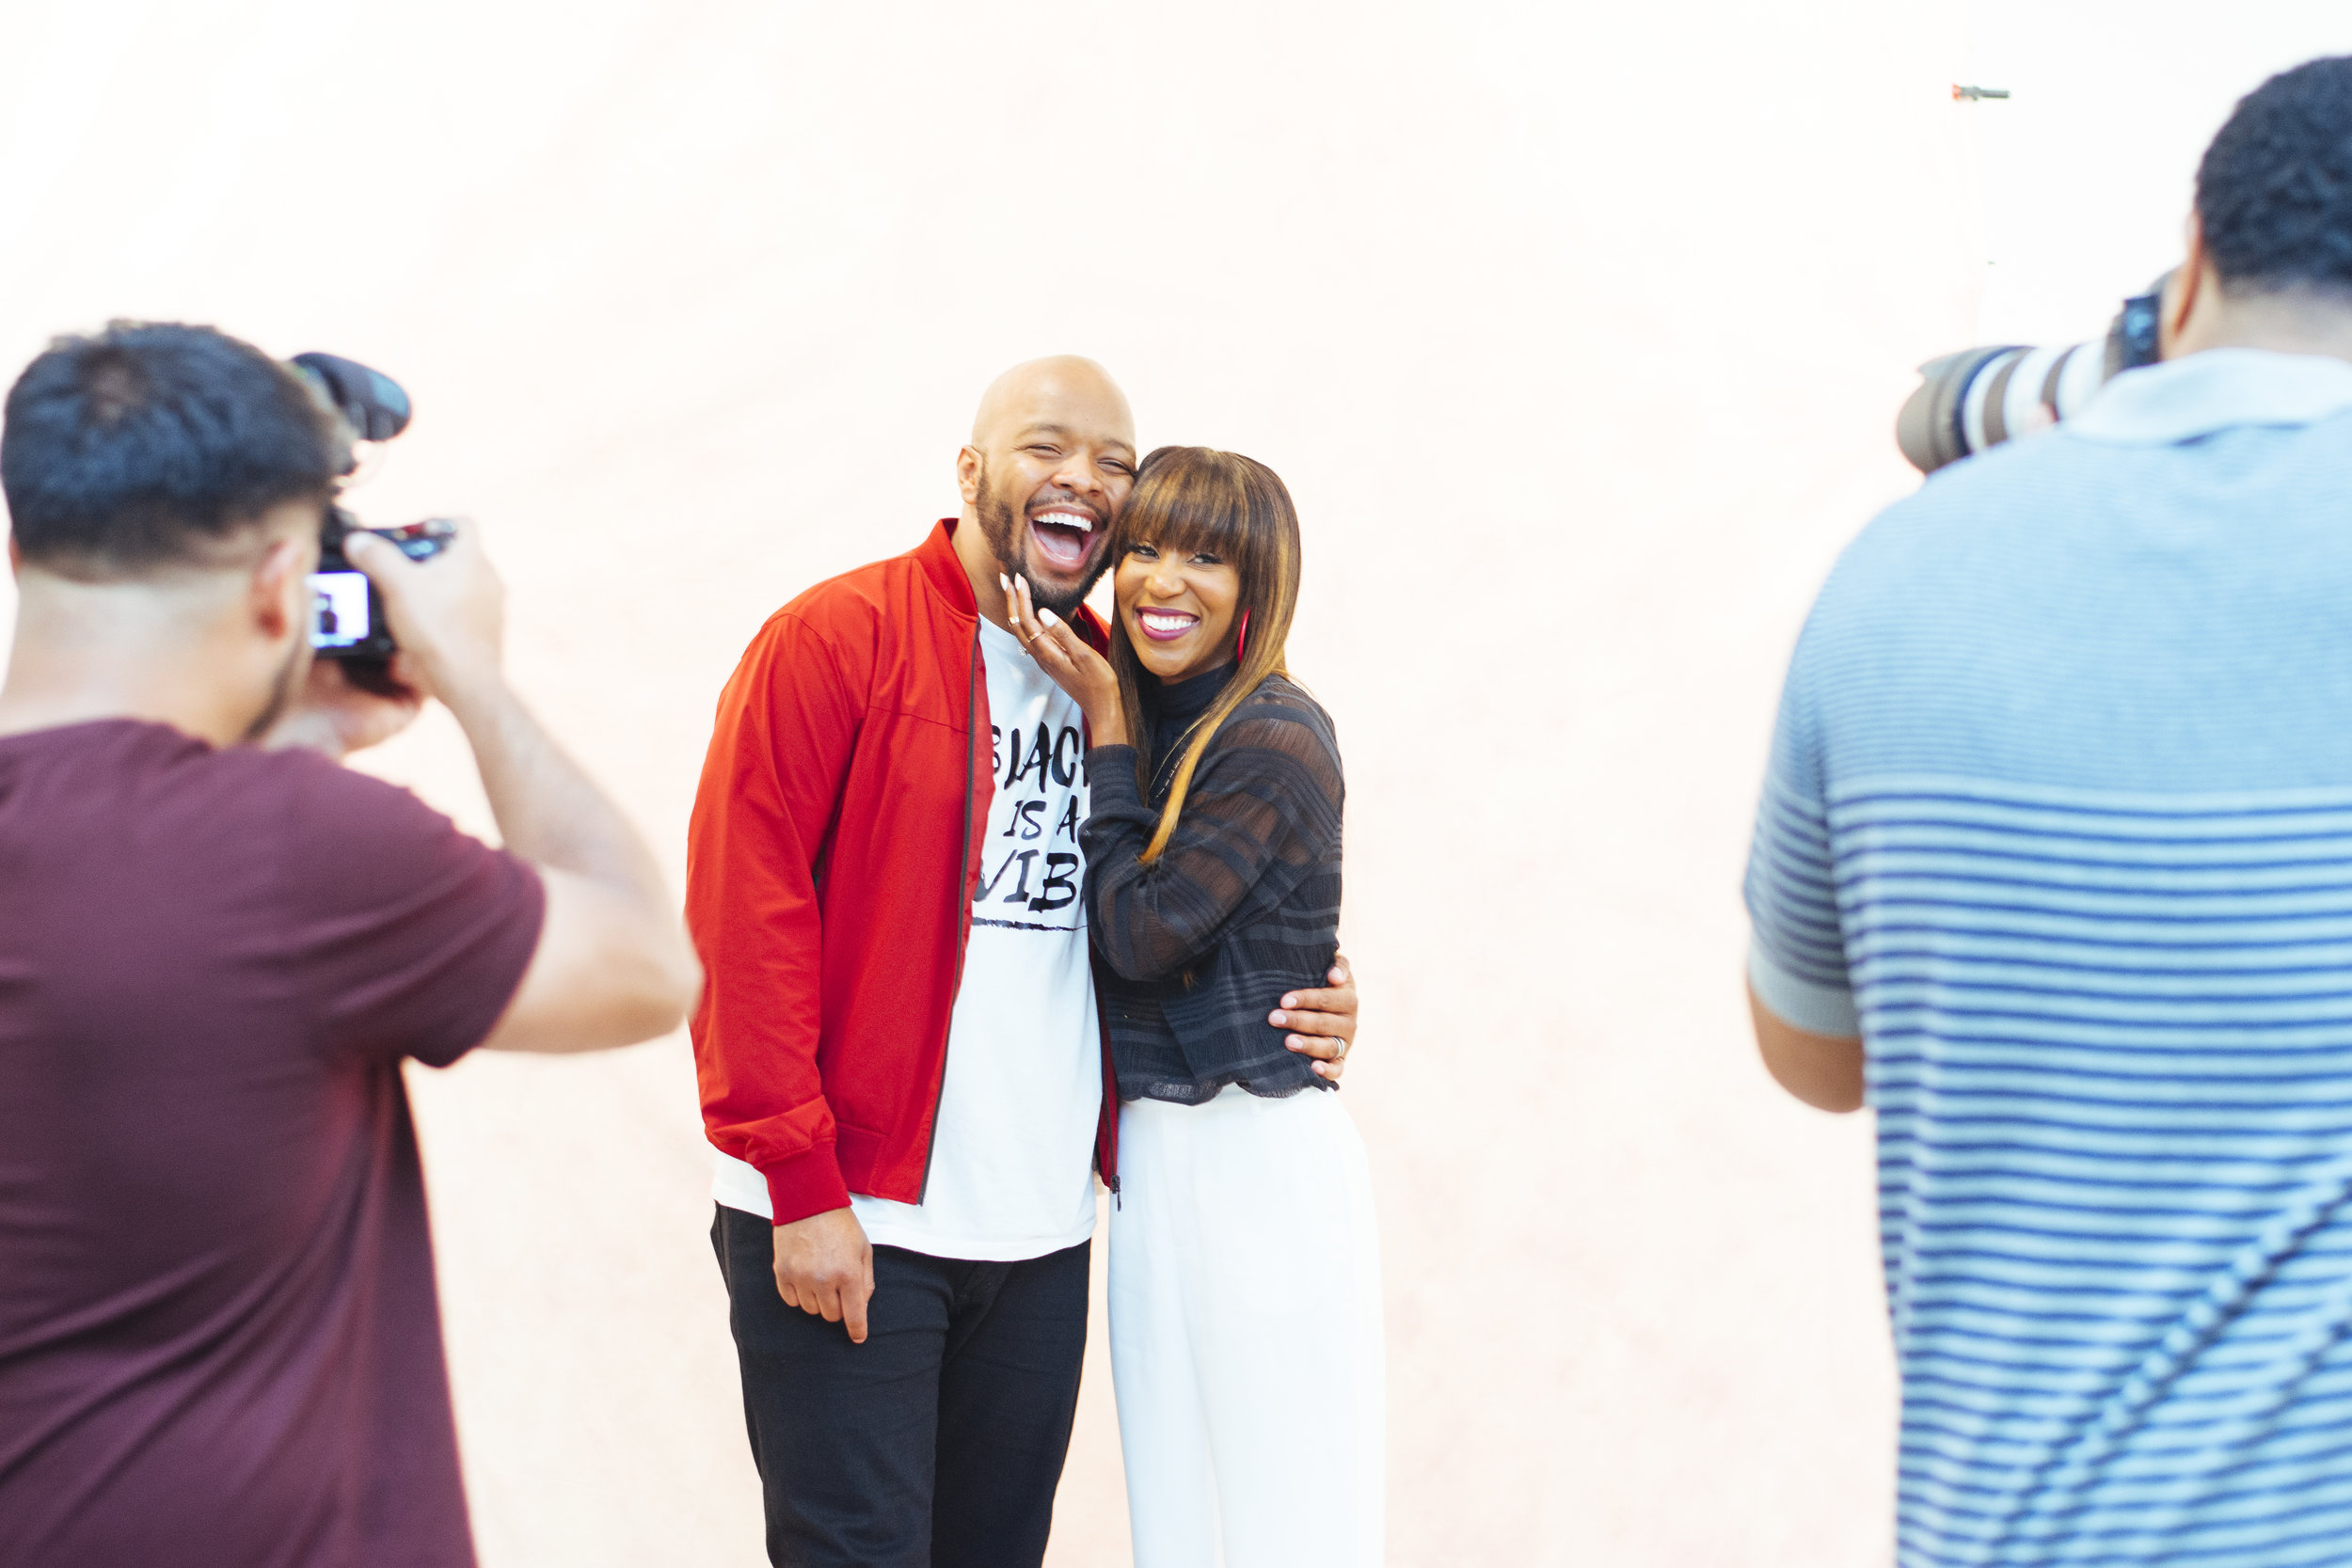 KevOnStage and his lovely wife, Melissa Fredricks.